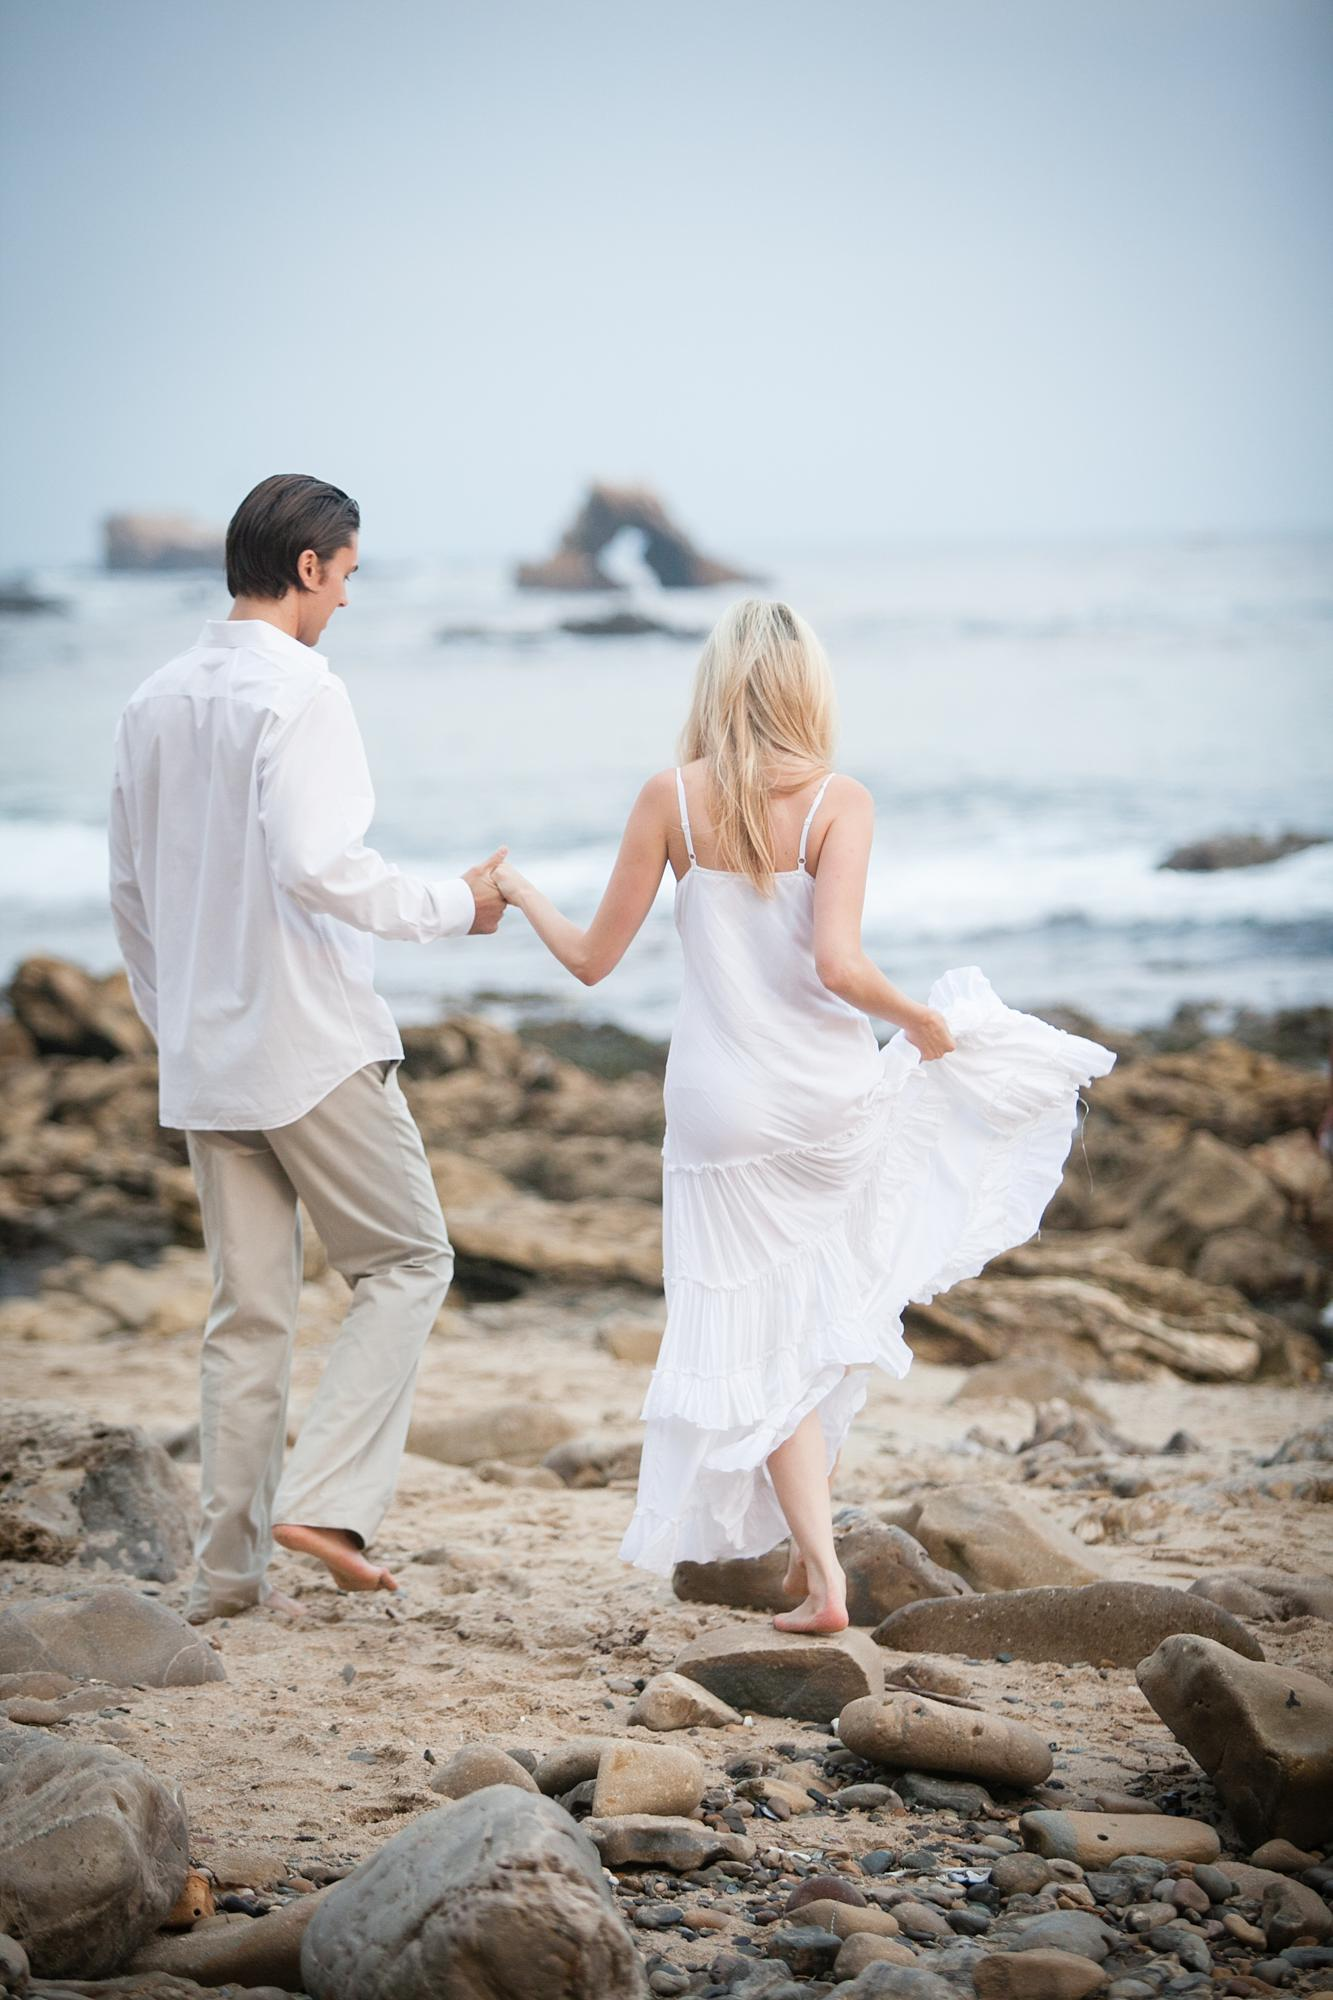 crystal-cove-engagement-LM-06.jpg